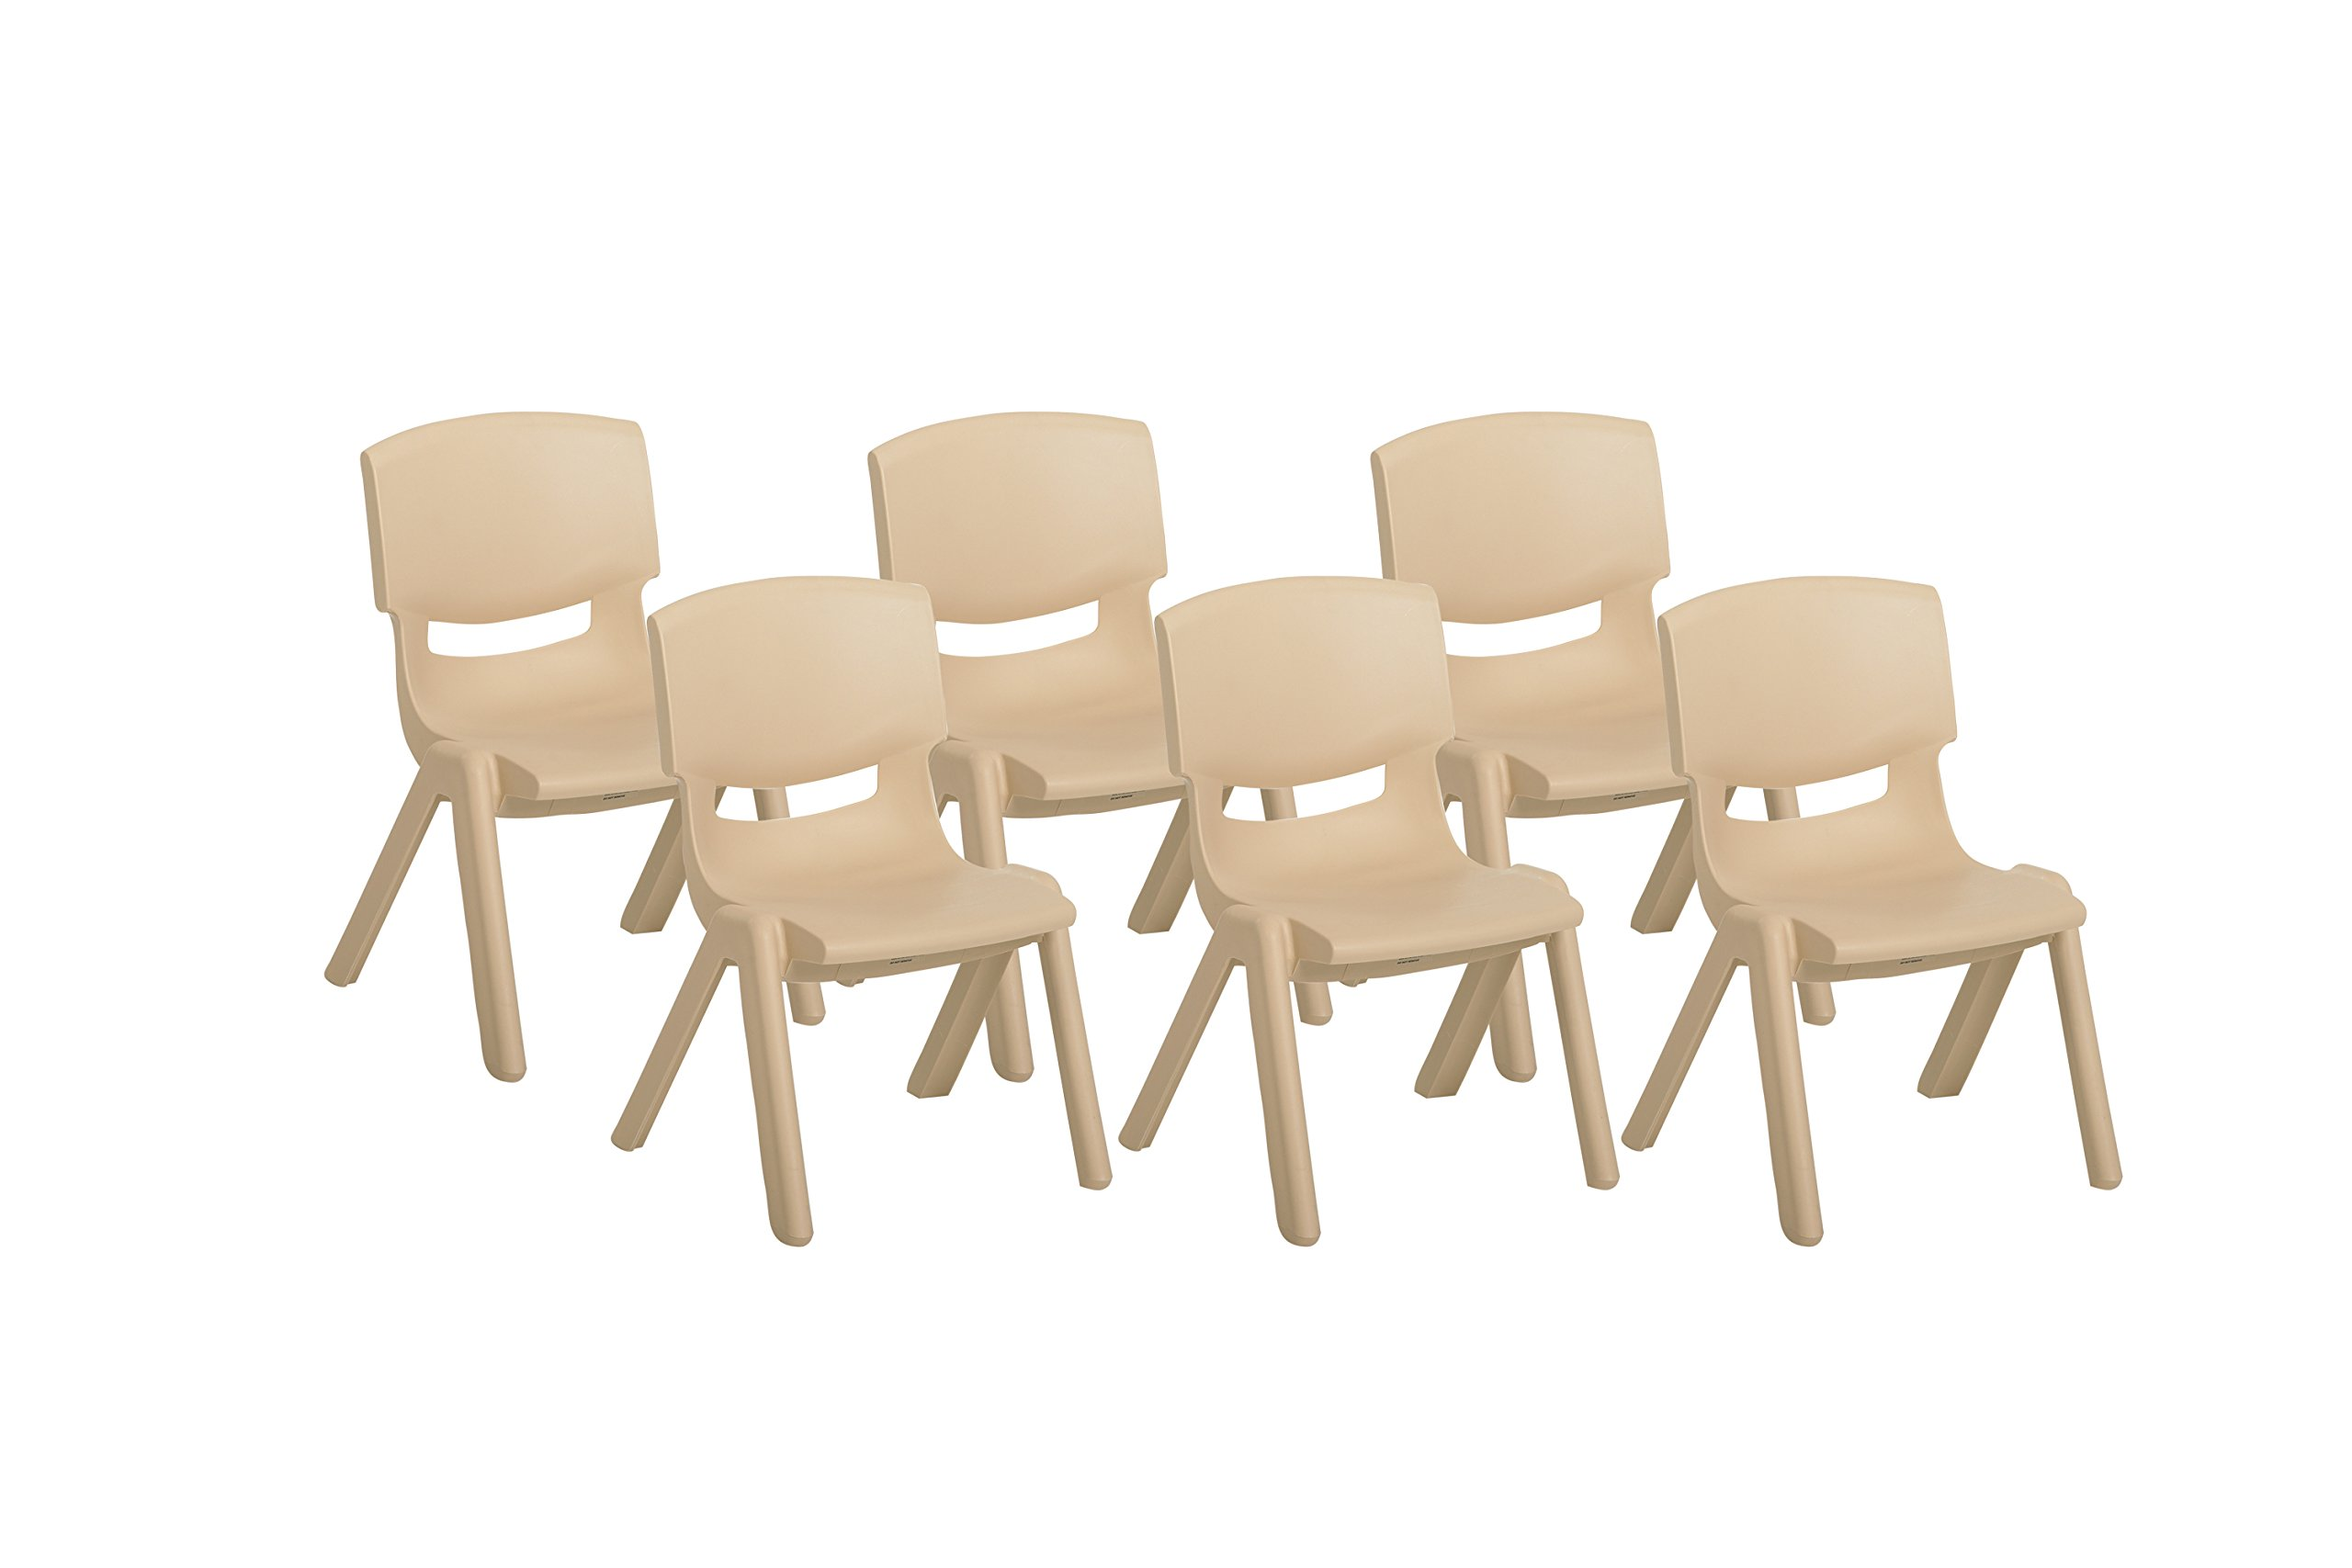 ECR4Kids School Stack Resin Chair, Indoor/Outdoor Plastic Stacking Chairs for Kids, 14 inch Seat Height, Sand (6-Pack)